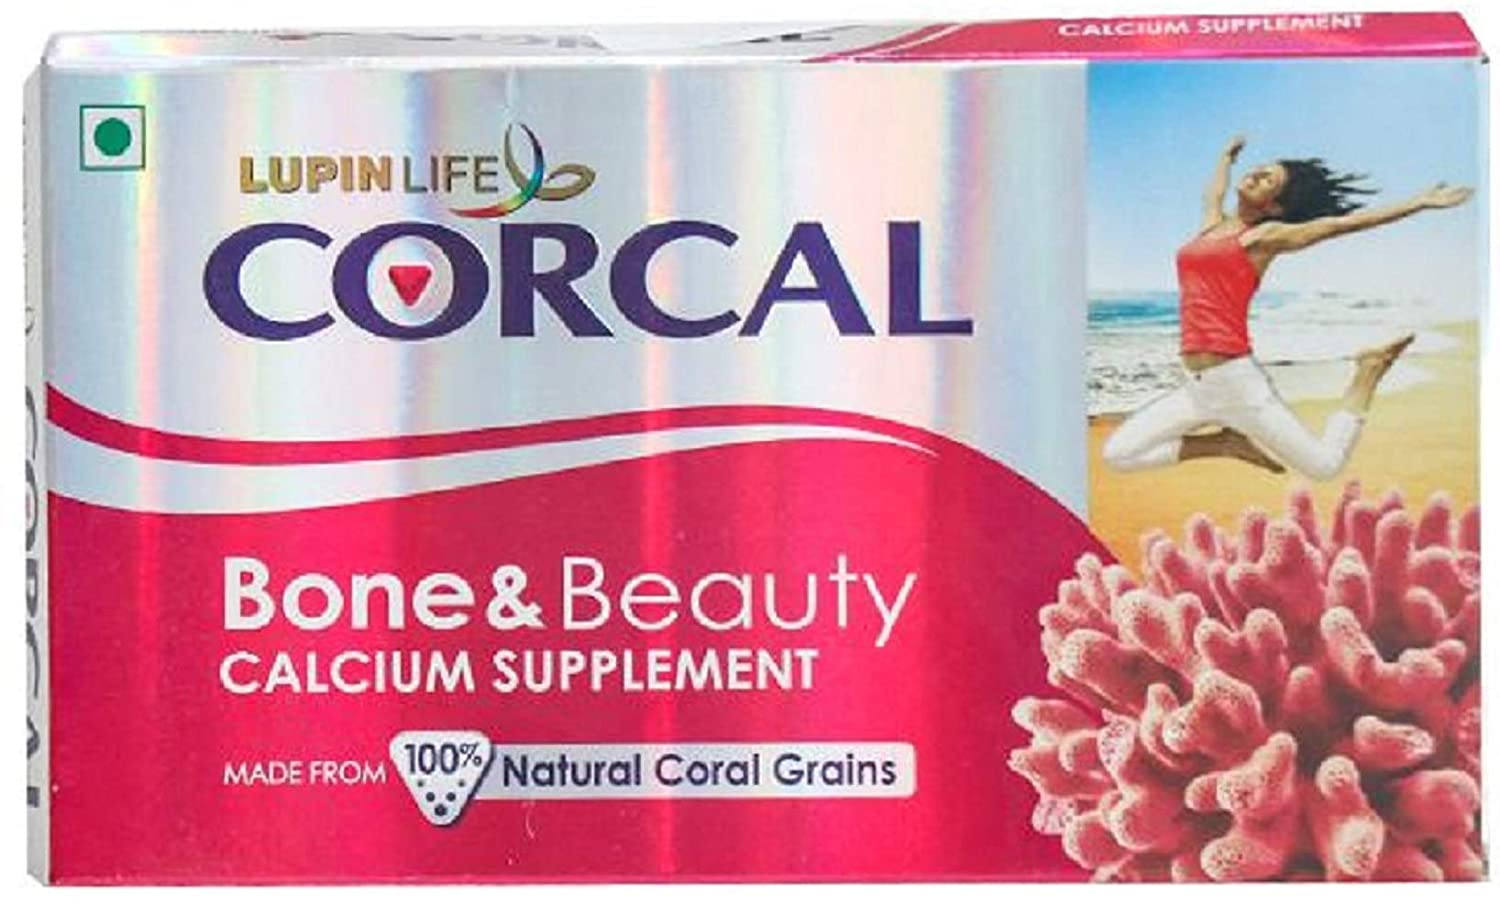 Lupinlife Corcal Bone & Beauty is the best calcium tablets for women india